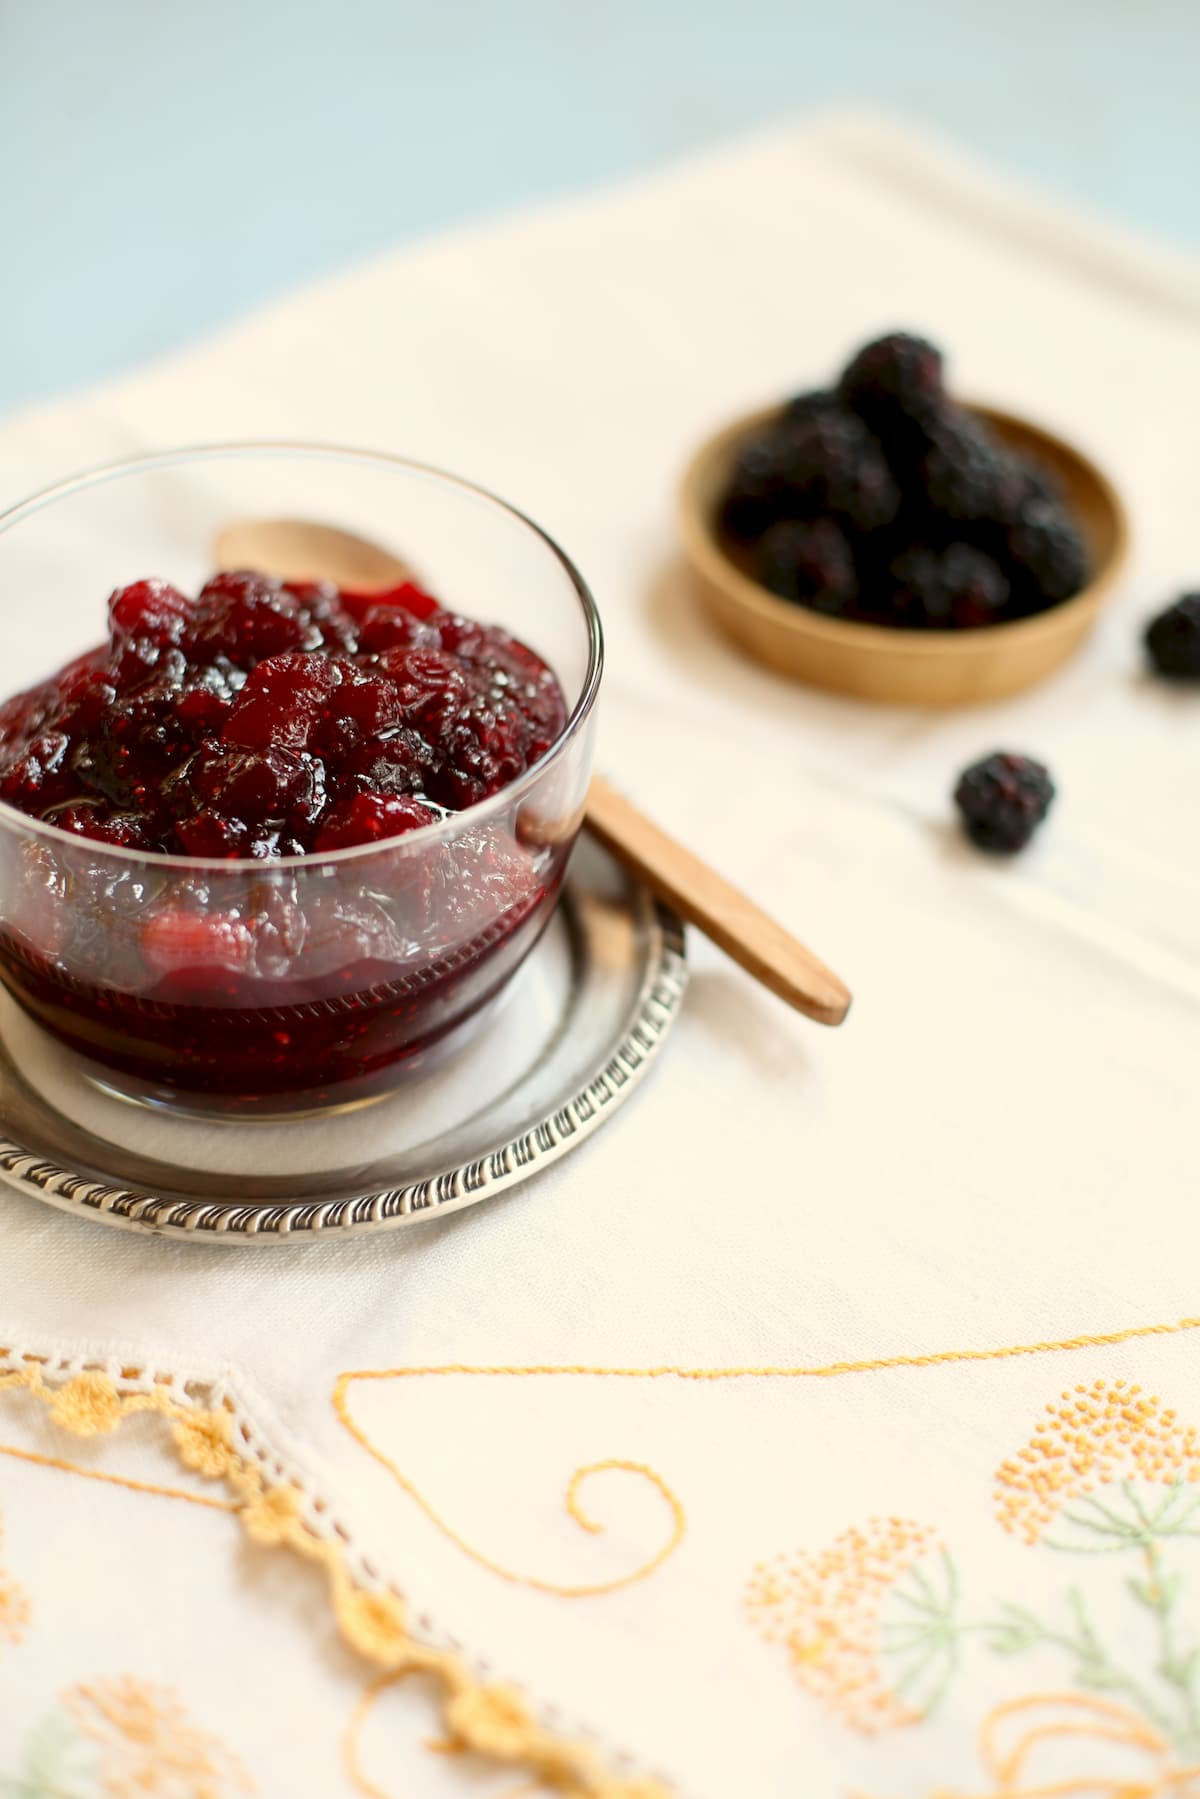 a glass bowl of cranberry sauce with blackberries behind it on a tablecloth with yellow trim.